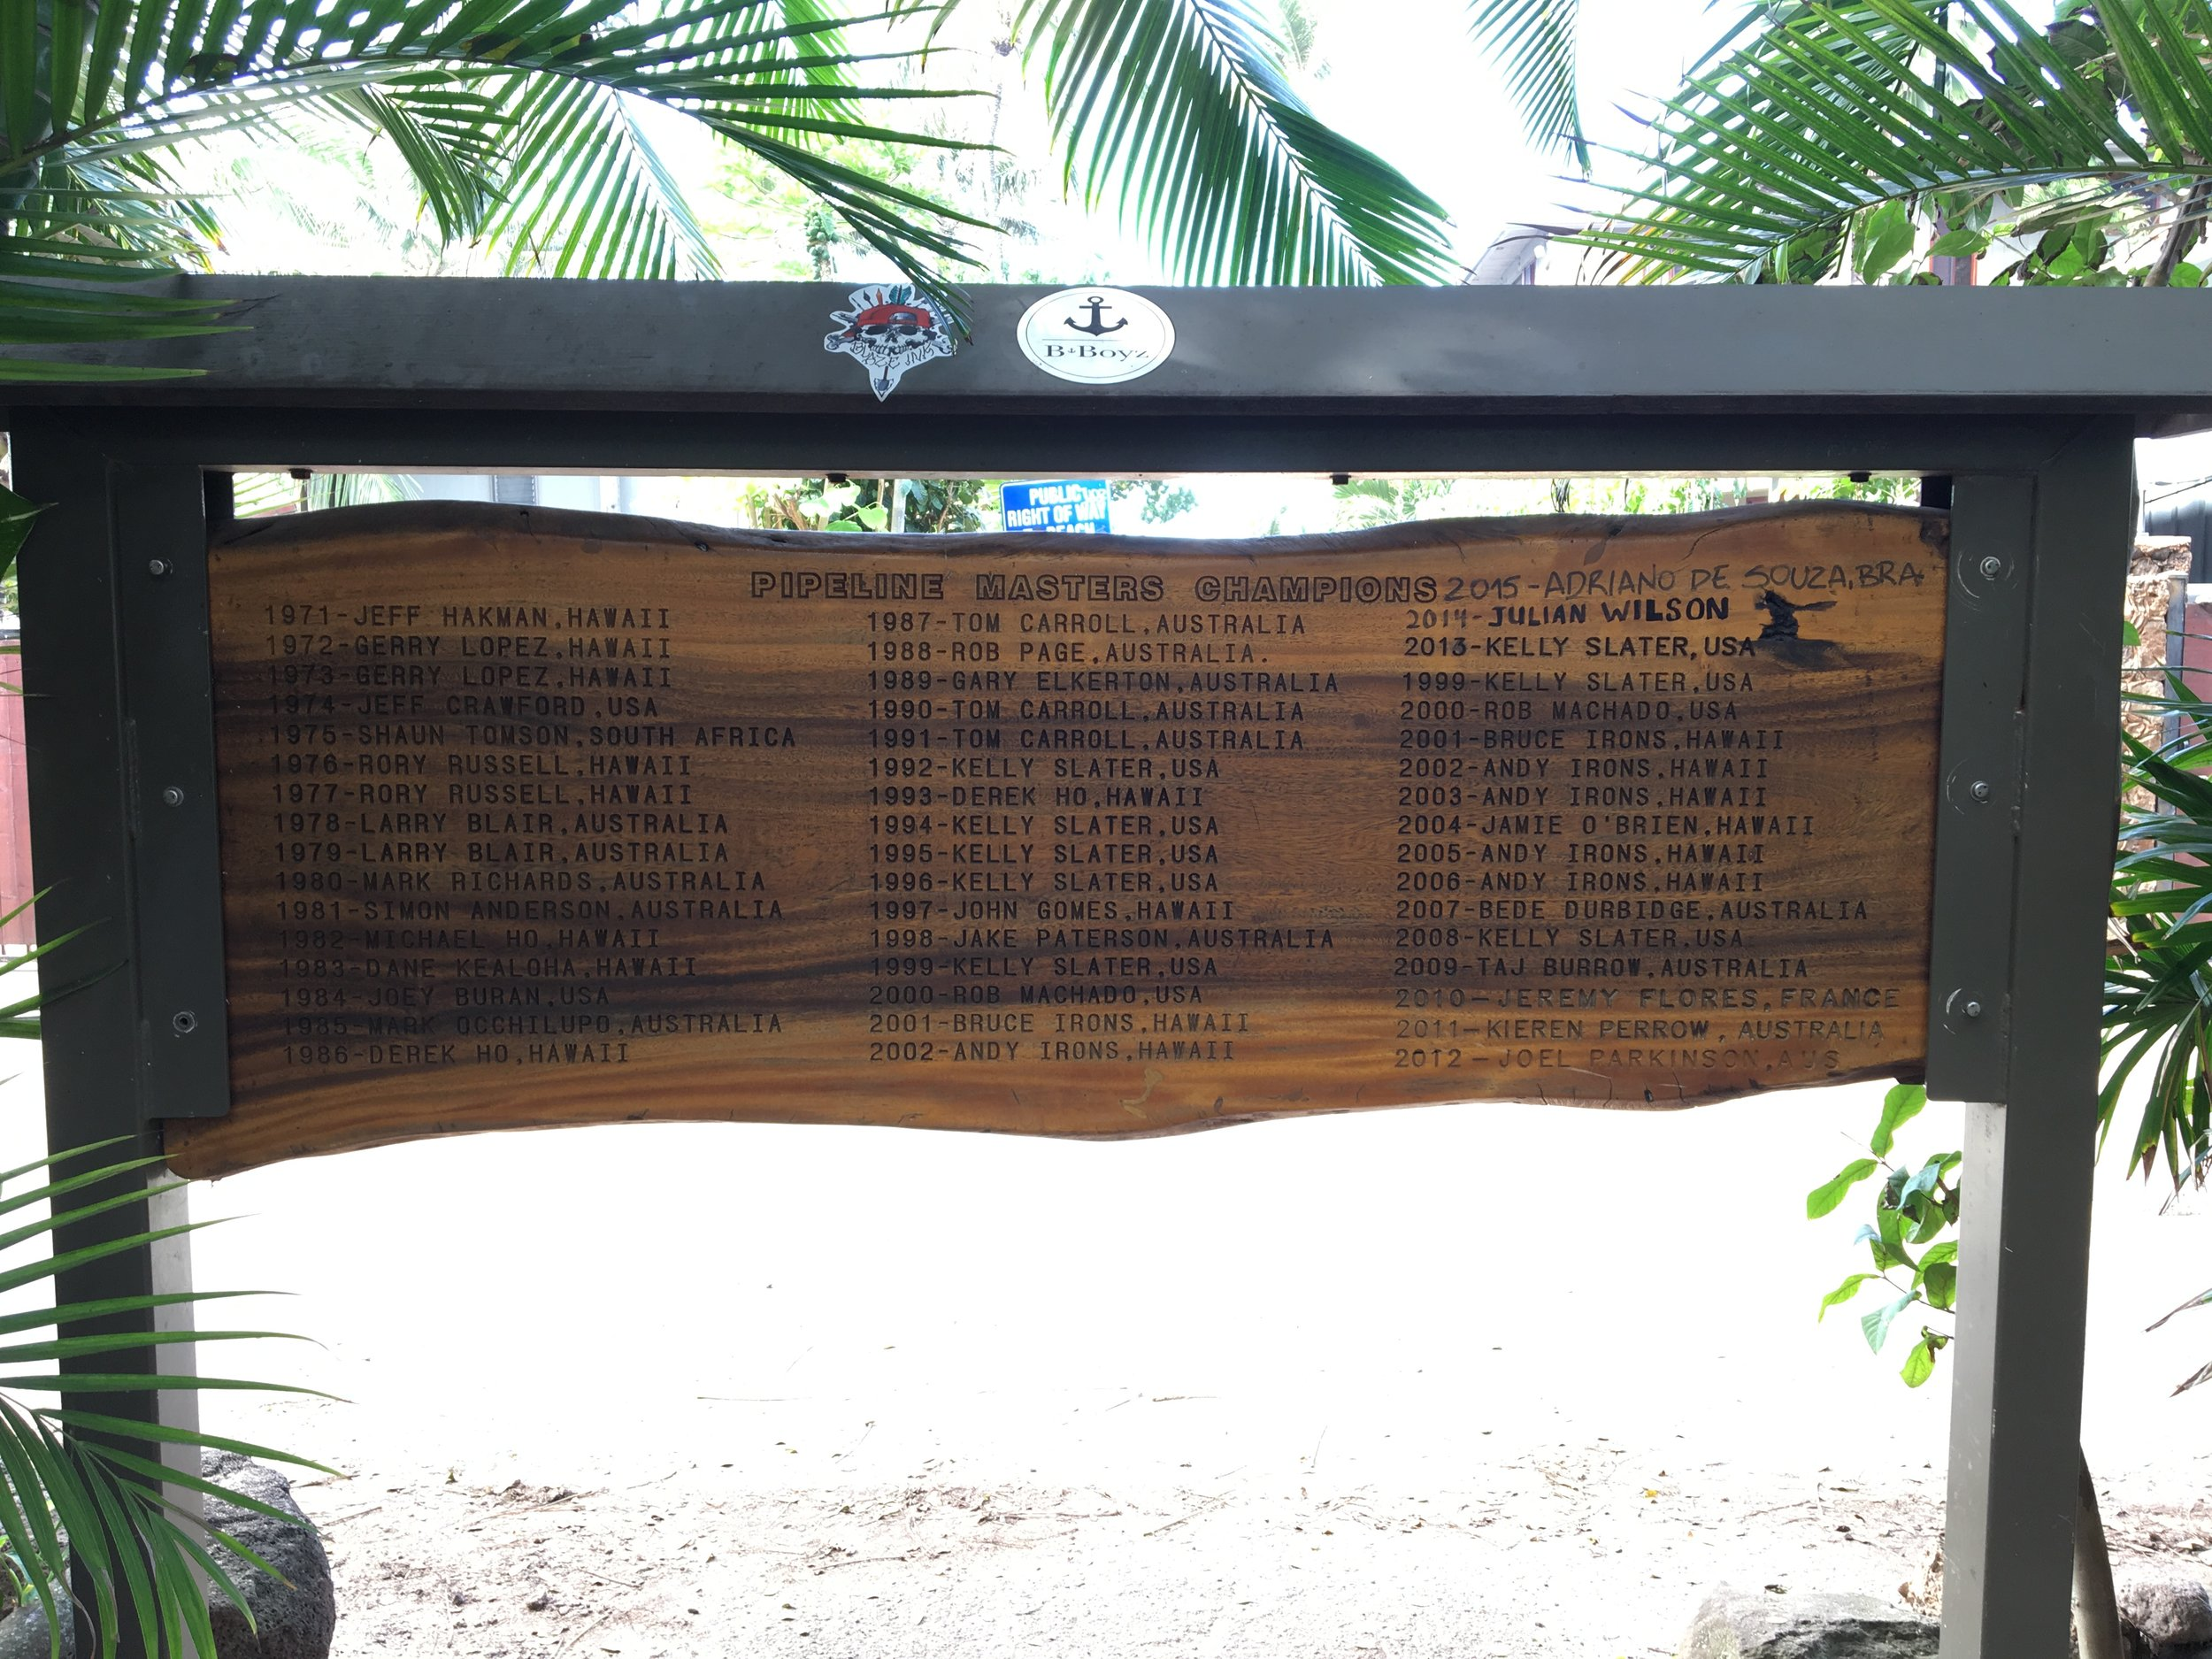 The plaque next to Pipeline with all the winners of the Pipemasters since 1971. Jeff Crawford 4th one in. We were also lucky enough to have a beer overlooking Waimea Bay with Tom Carroll. It was not until I saw this board that I realised he was 3 times Pipemaster. Sorry Tom.